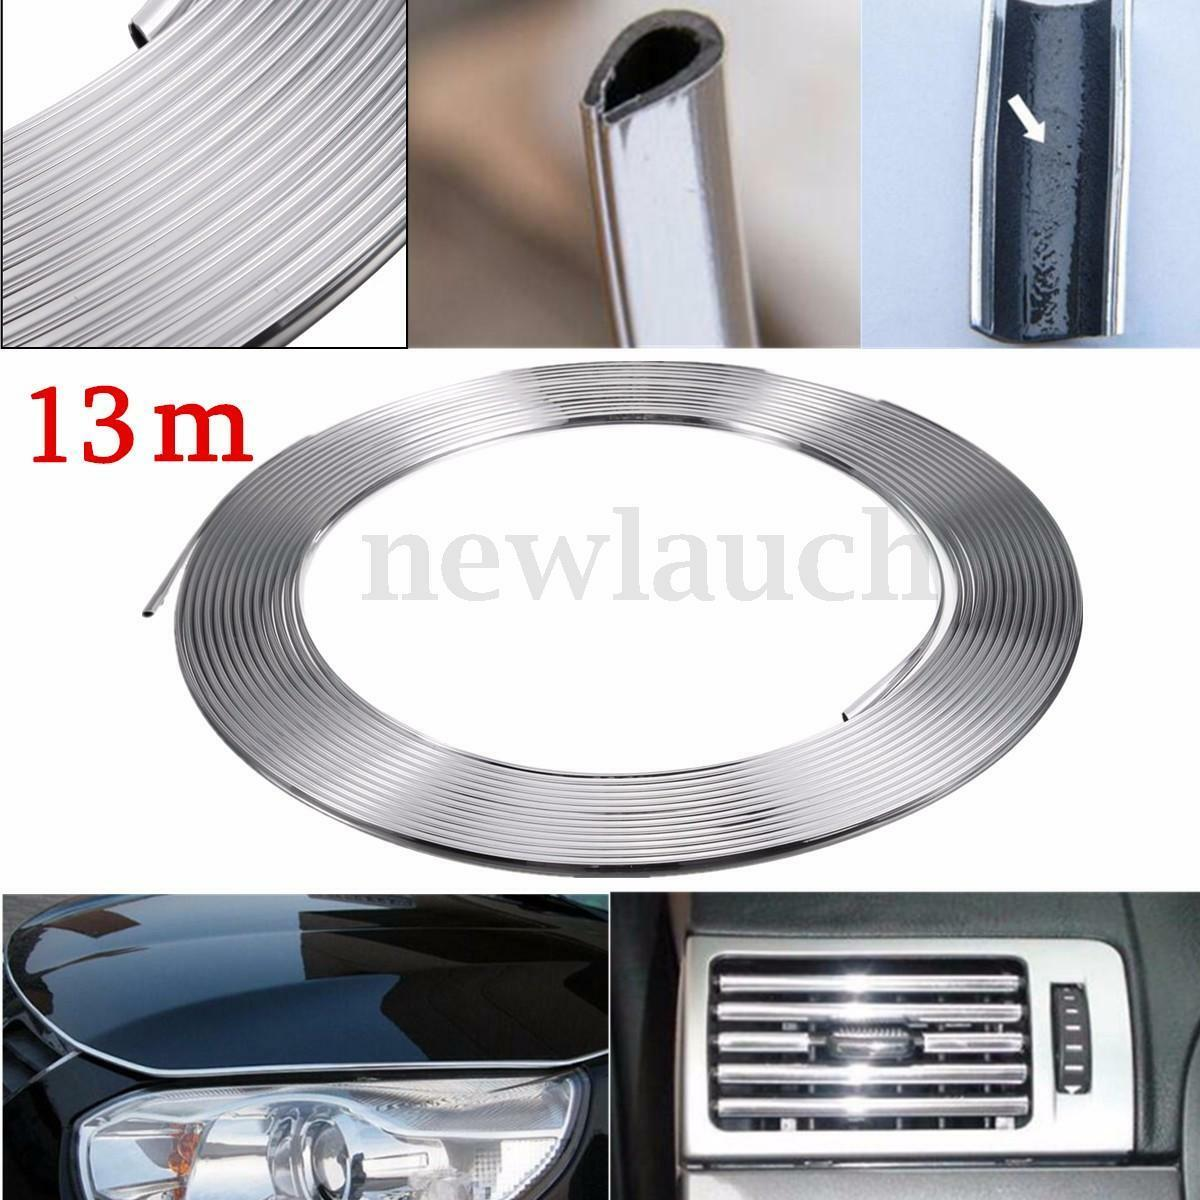 13m bande ruban chrome adh sif auto voiture tuning pr d coration grille air vent eur 8 89. Black Bedroom Furniture Sets. Home Design Ideas